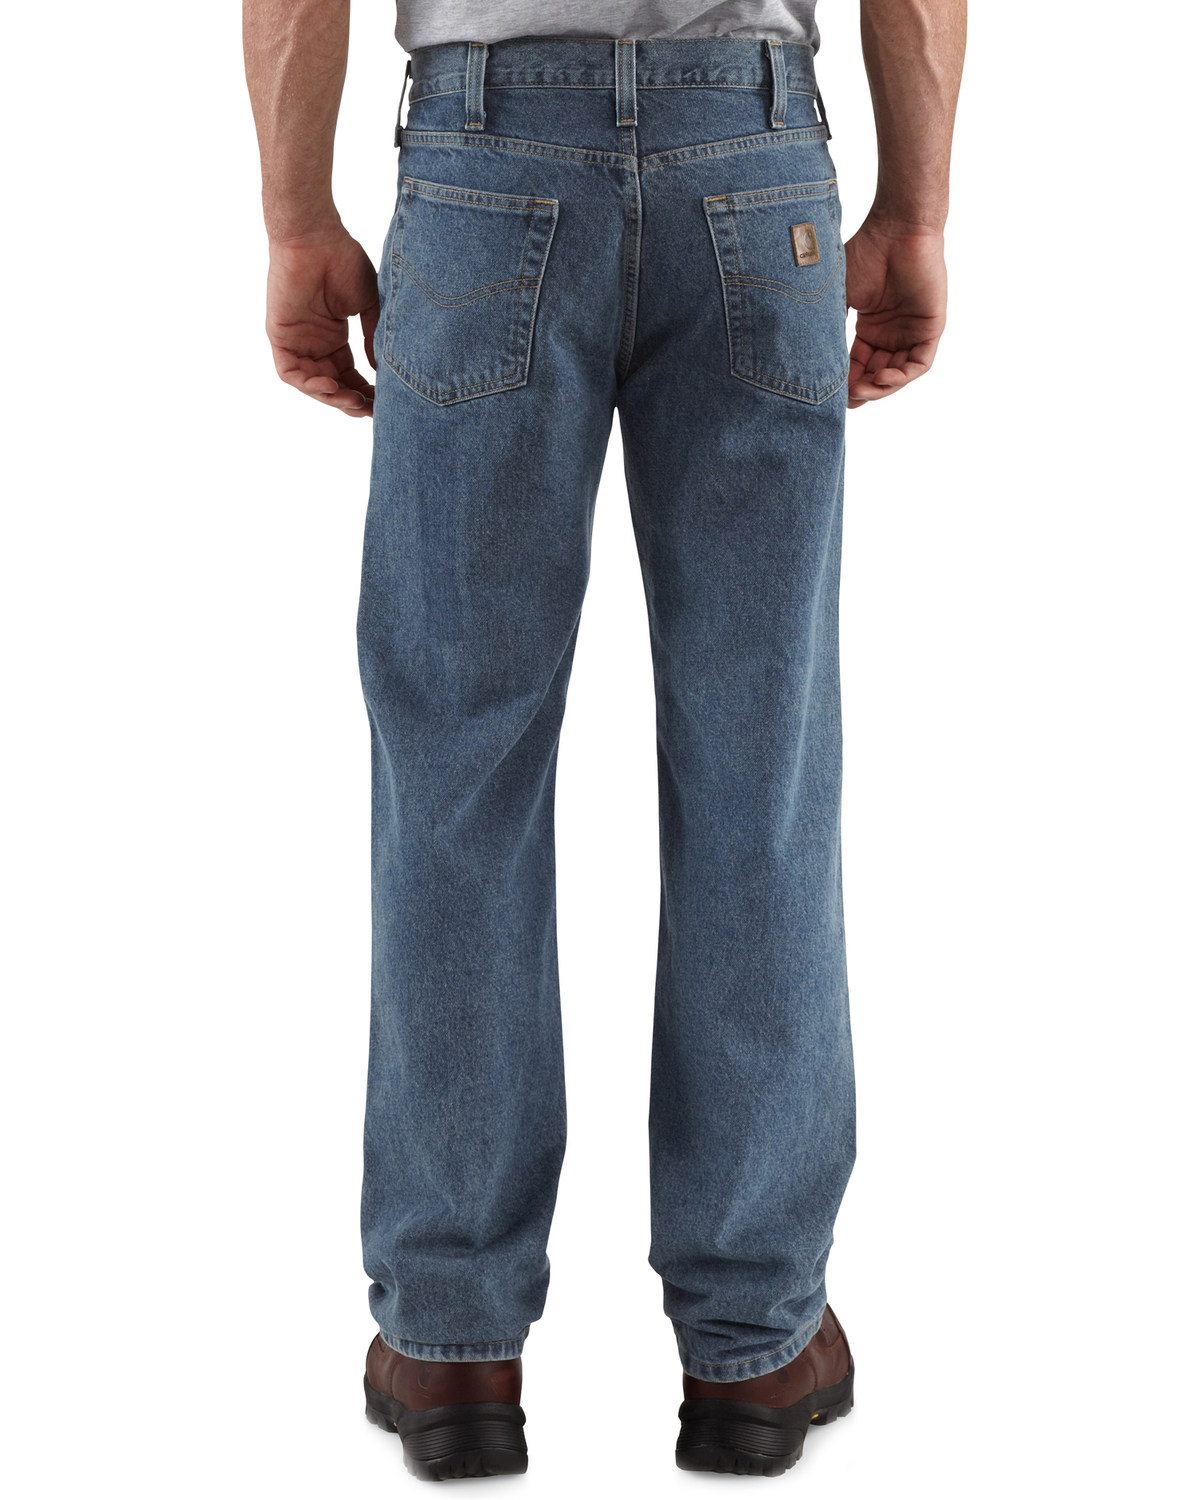 2cf5d01def4 Zoomed Image Carhartt Relaxed Fit Straight Leg Five Pocket Work Jeans, Dark  Denim, hi-res